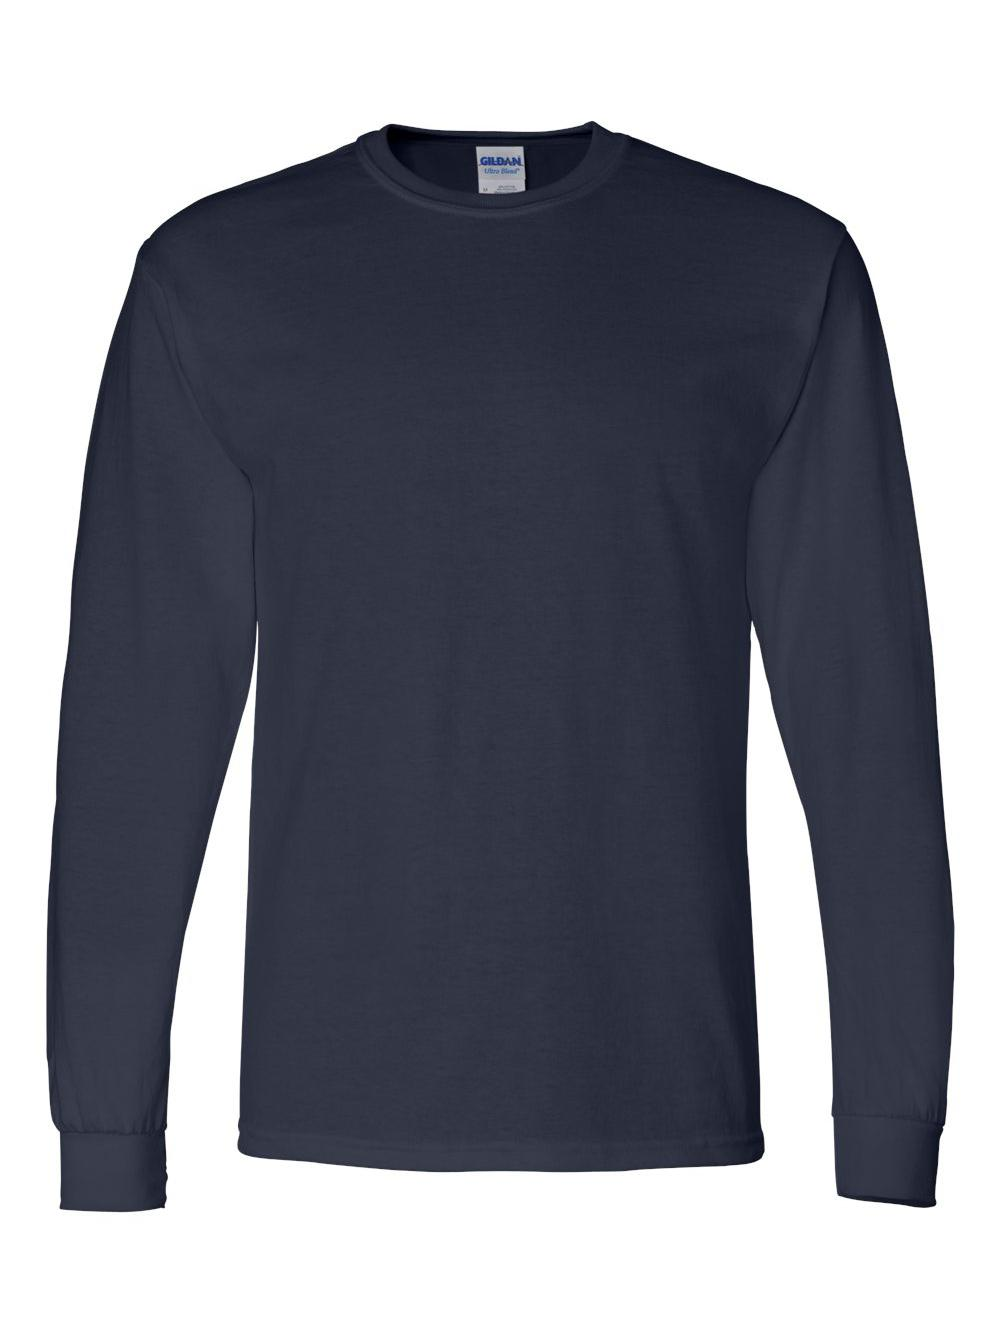 Gildan-DryBlend-50-50-Long-Sleeve-T-Shirt-8400 thumbnail 24